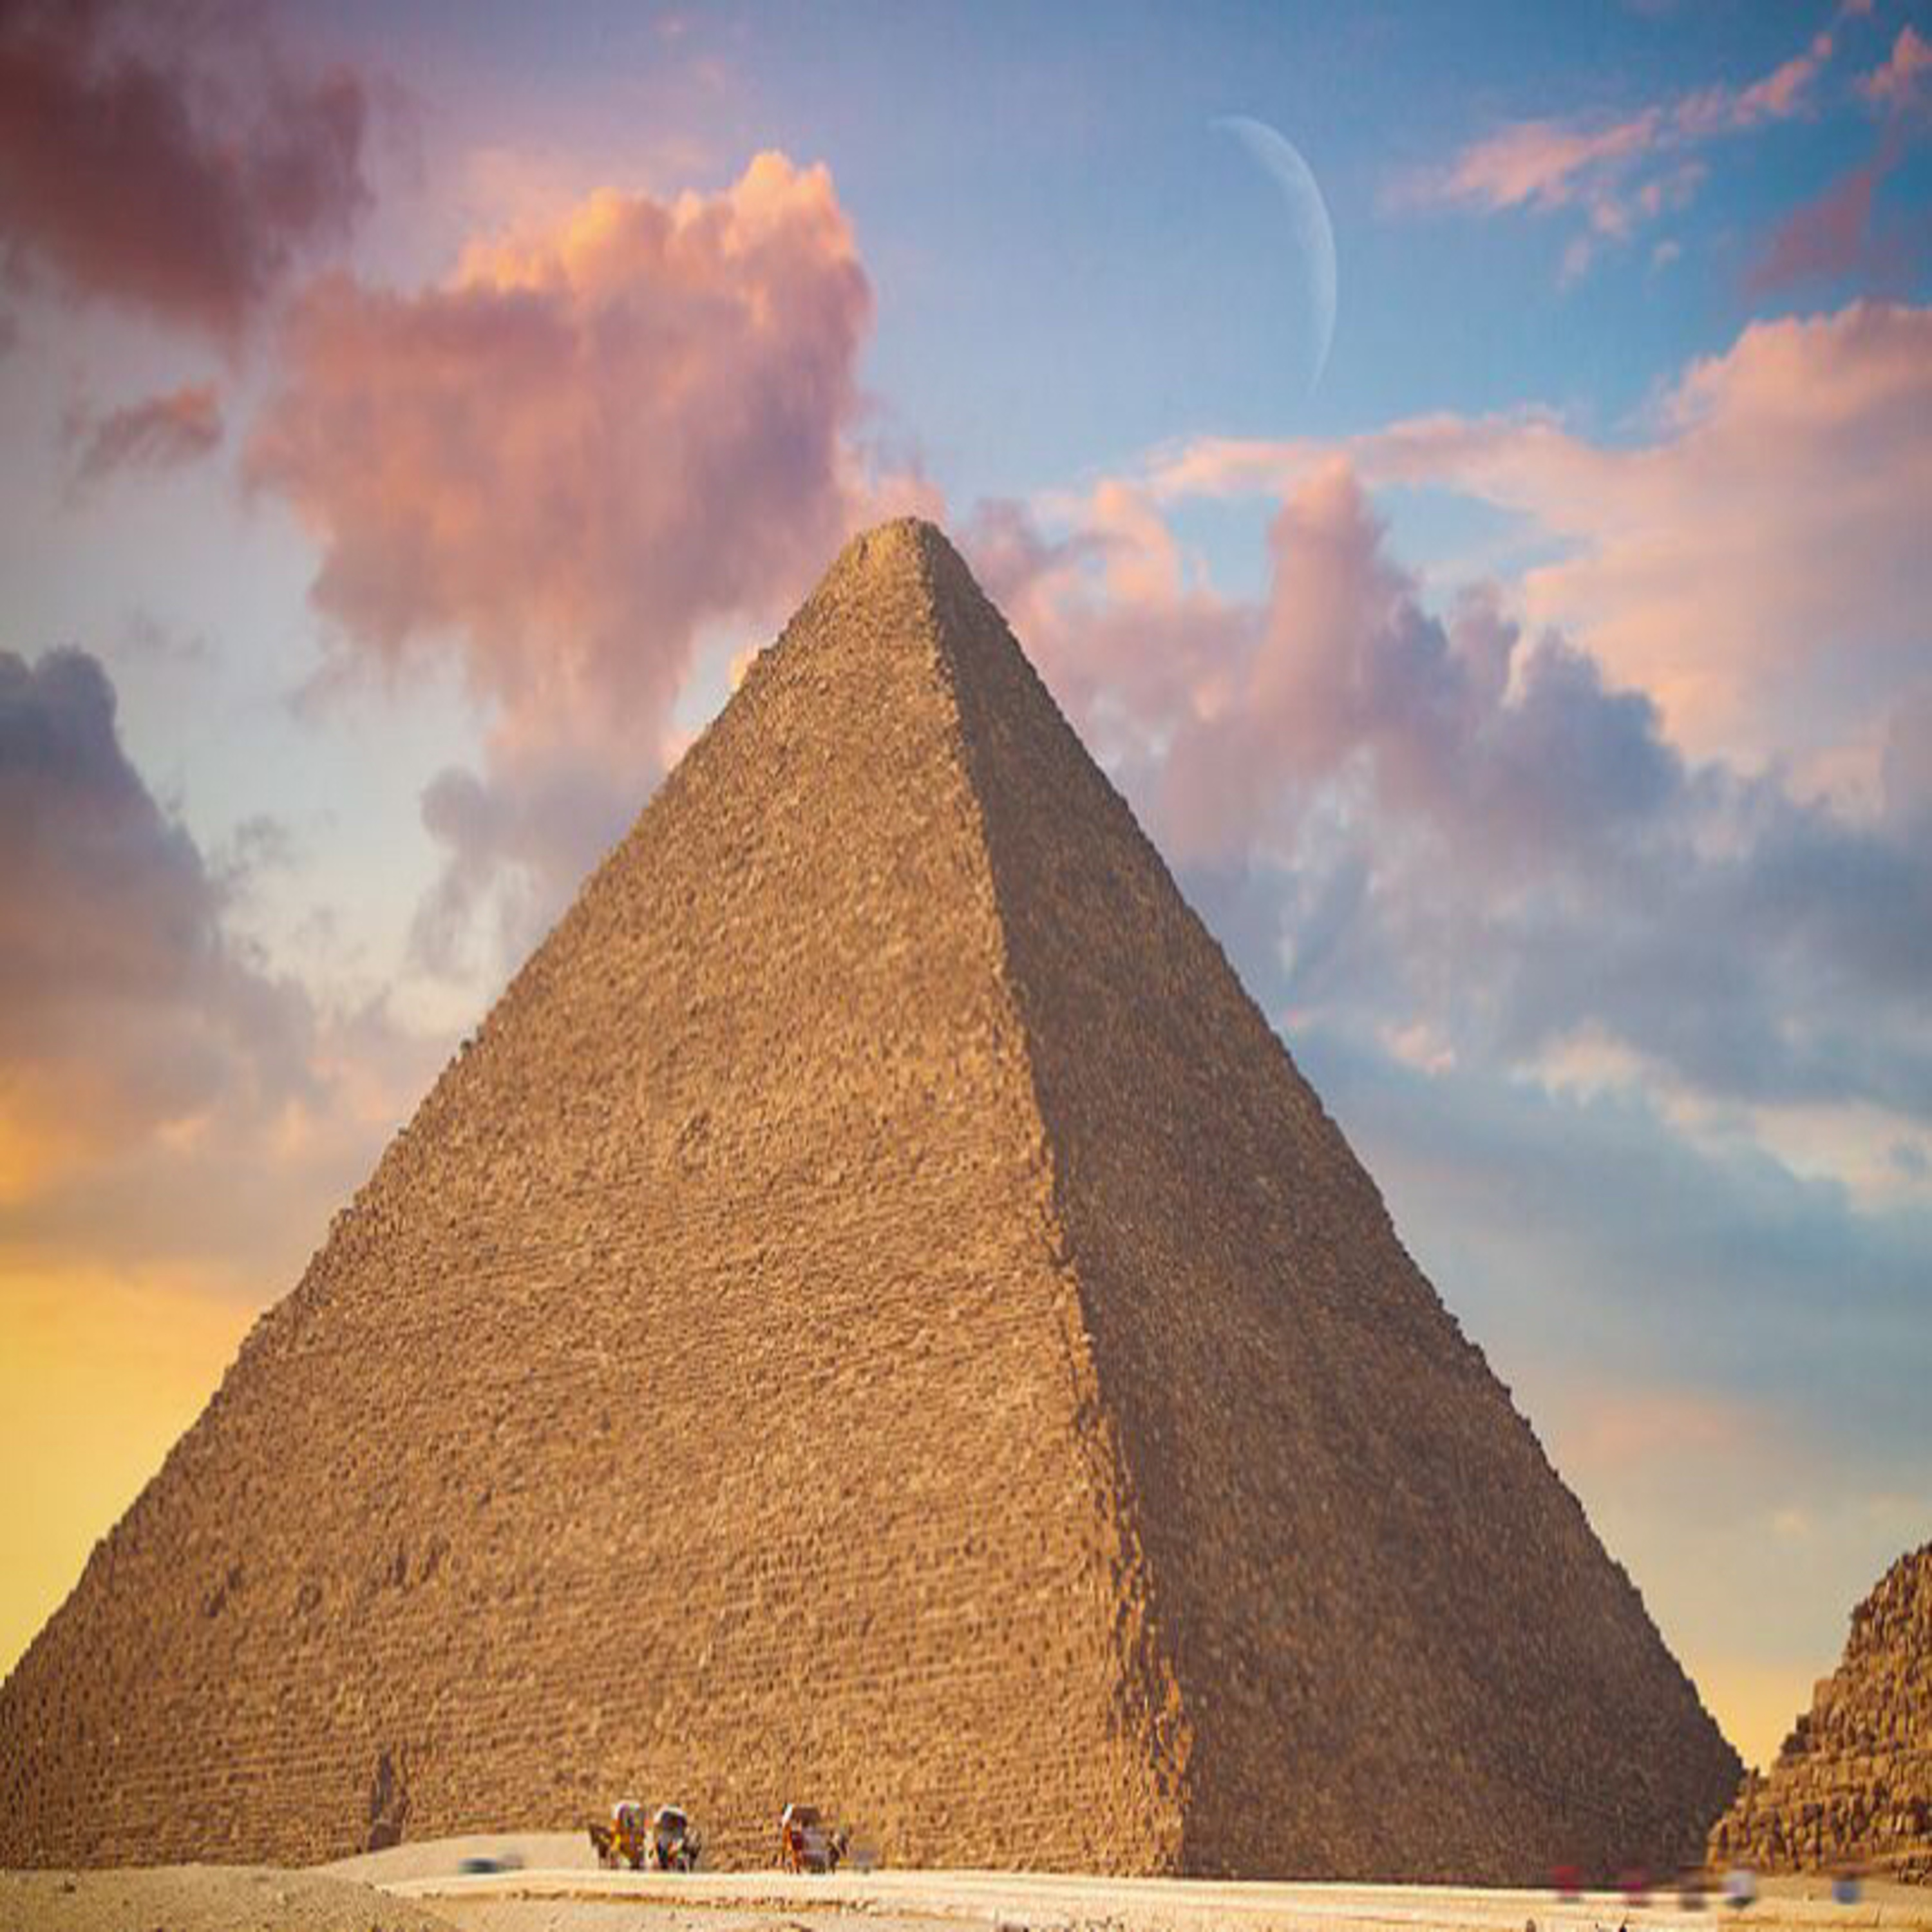 Podcast about pyramids